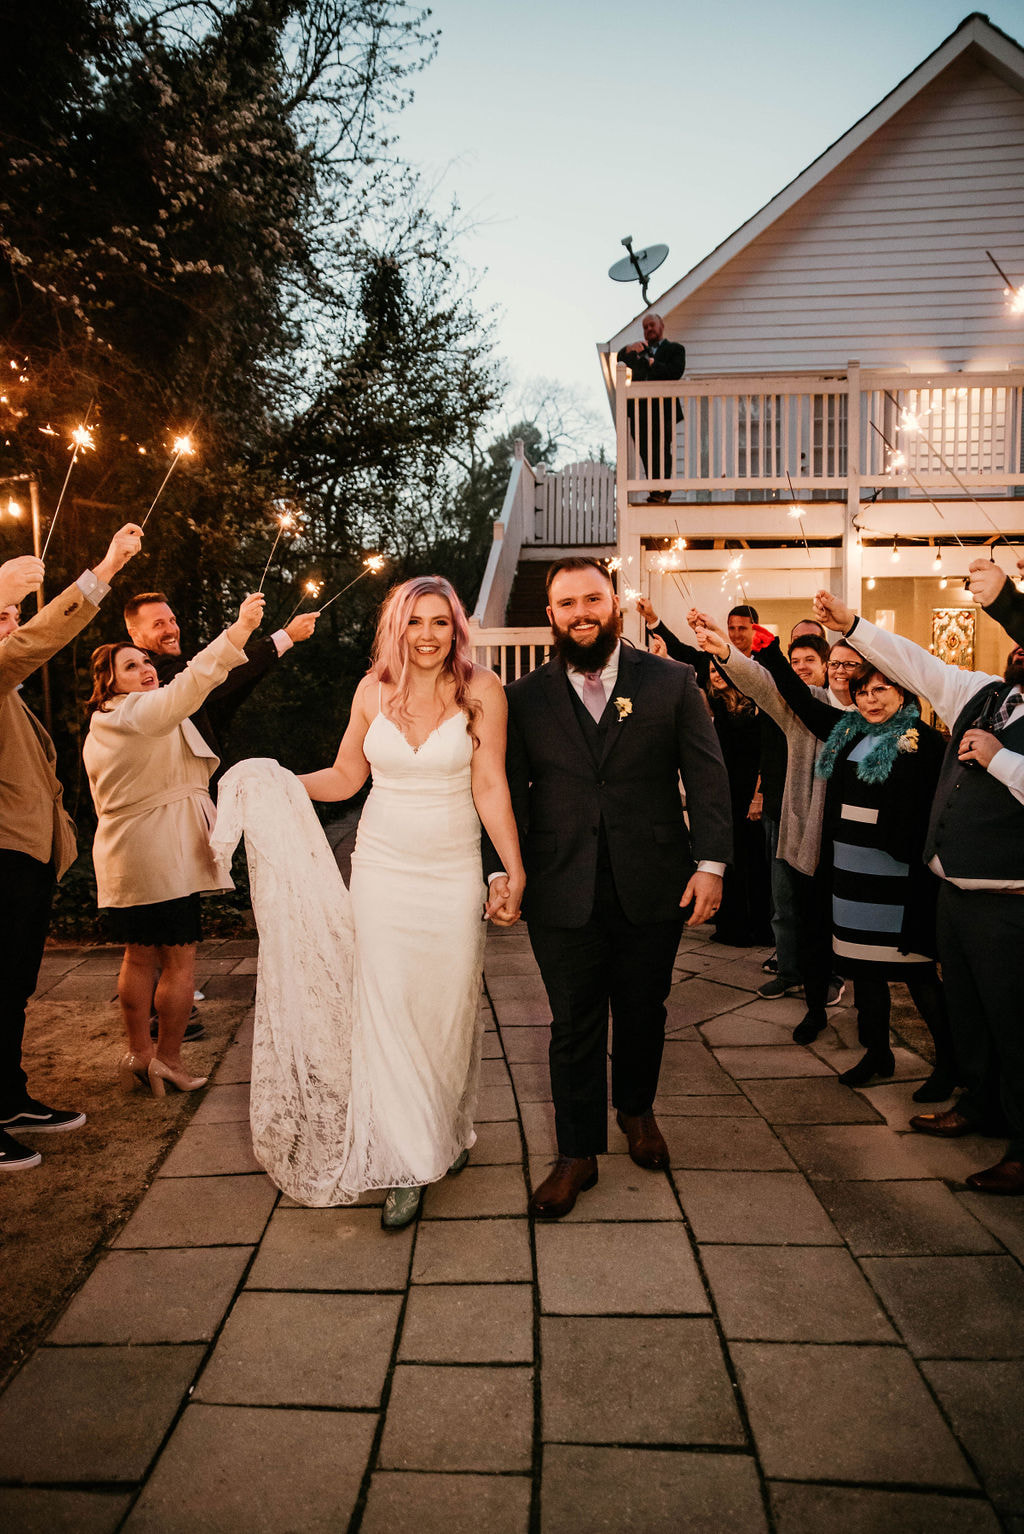 Tara and Joseph smiling while guests hold sparklers